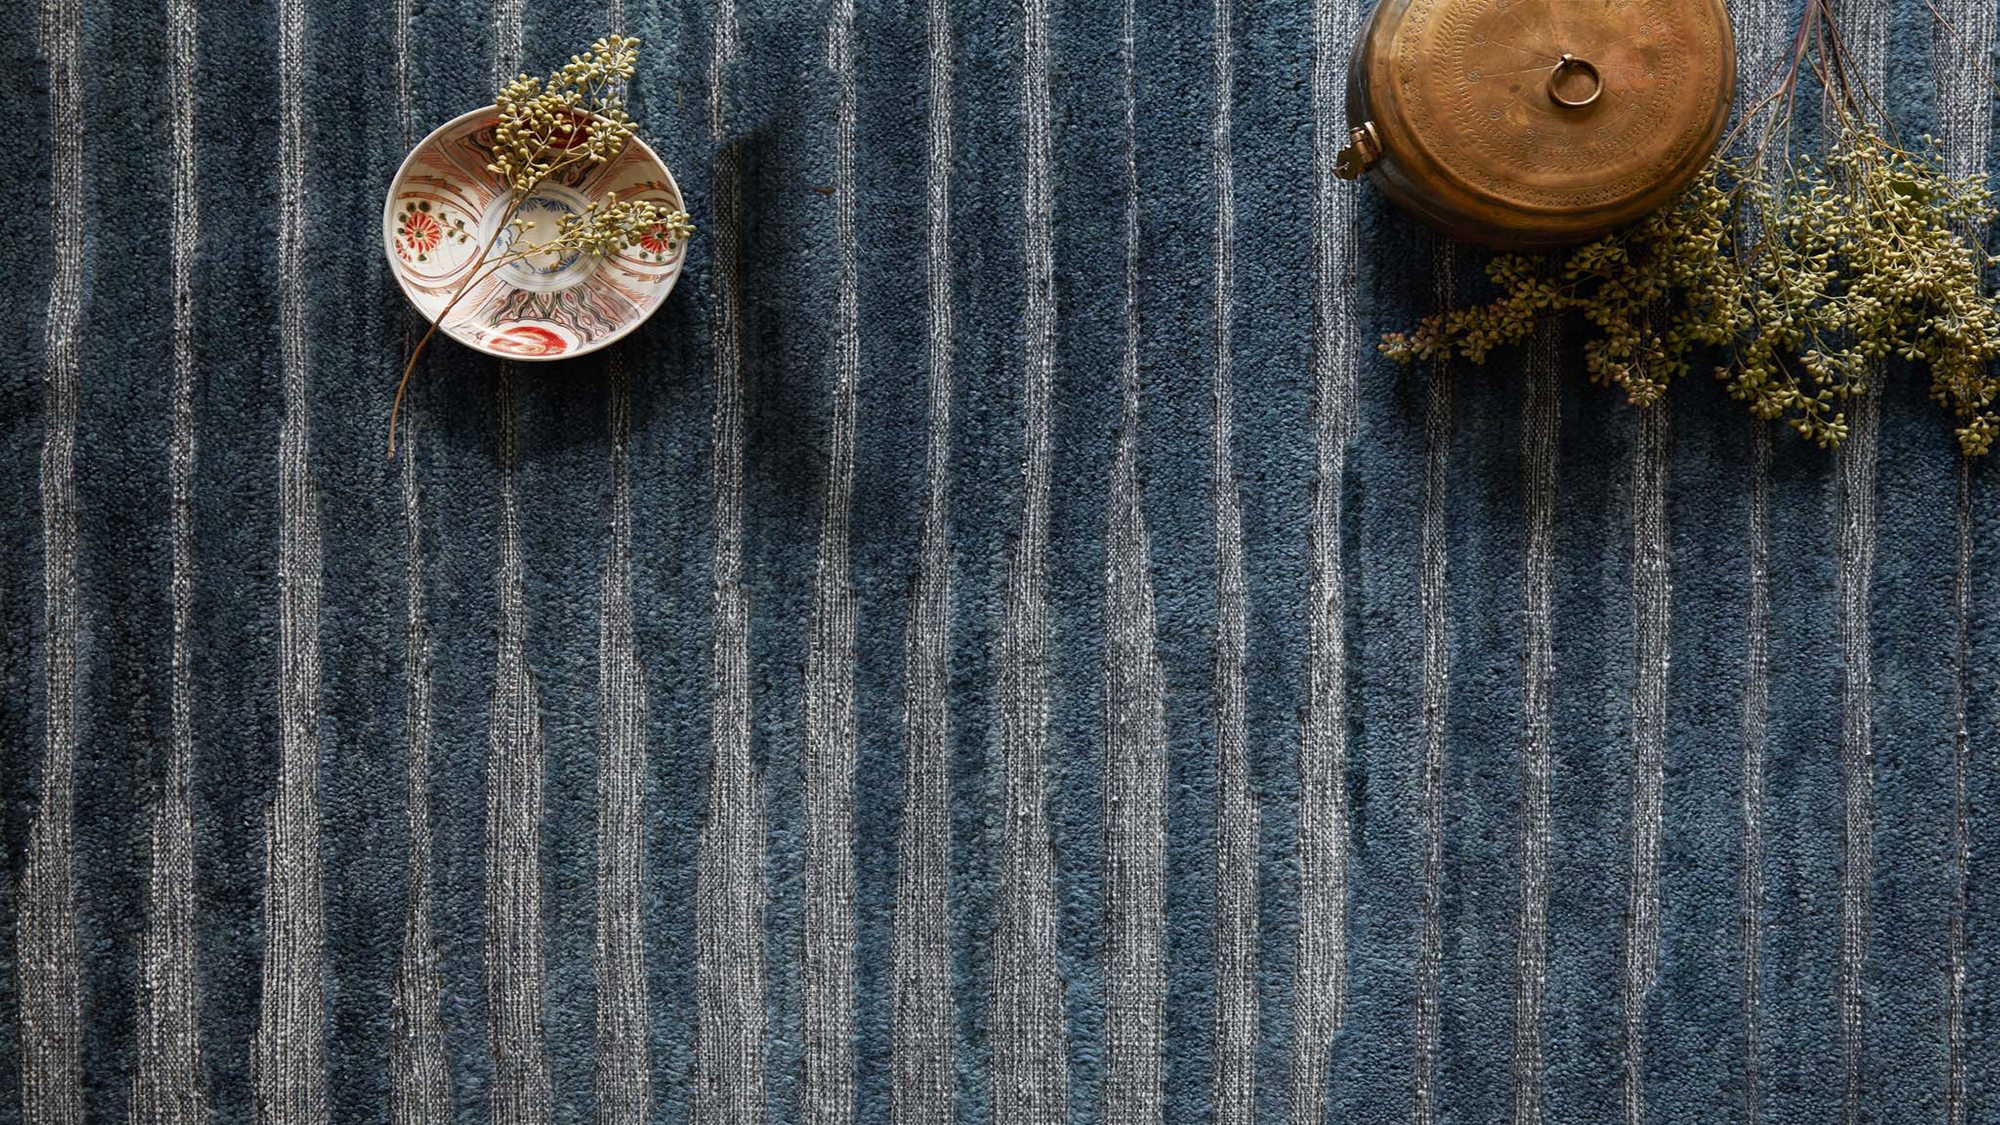 MODERN LUXURY RUG DEISGN FROM FALT WEAVE RUGS TO WOOL AND SILK AREA RUGS FROM BEST RUG GALLRY IN SAN FRANCISCO